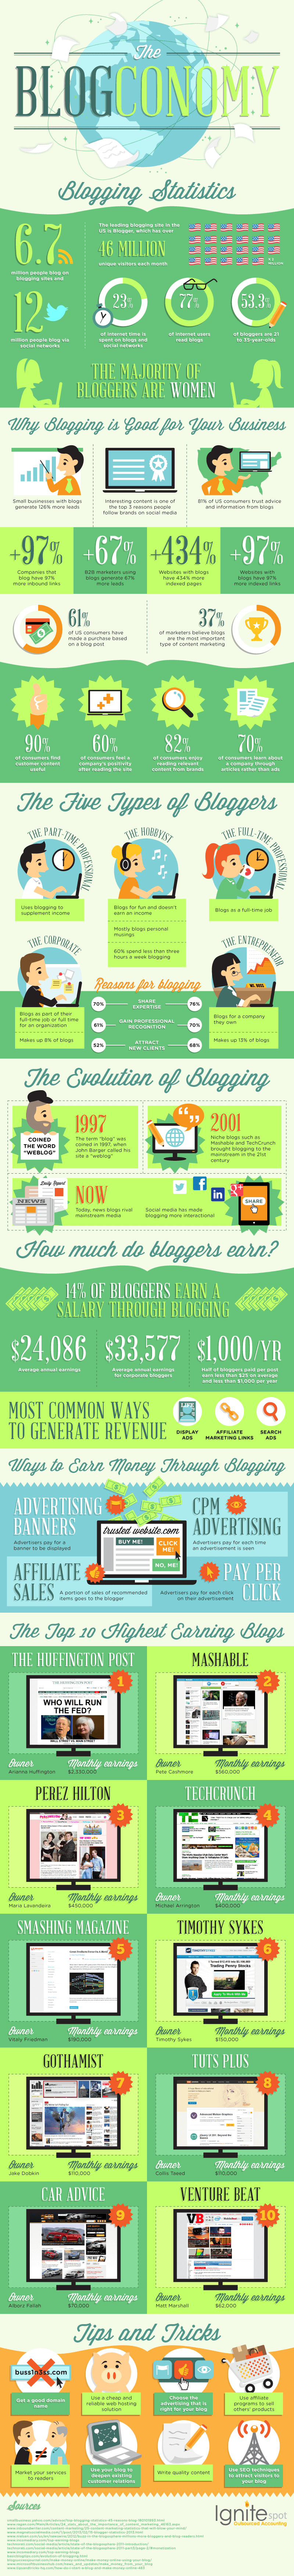 The-blogconomy-infographic[1]